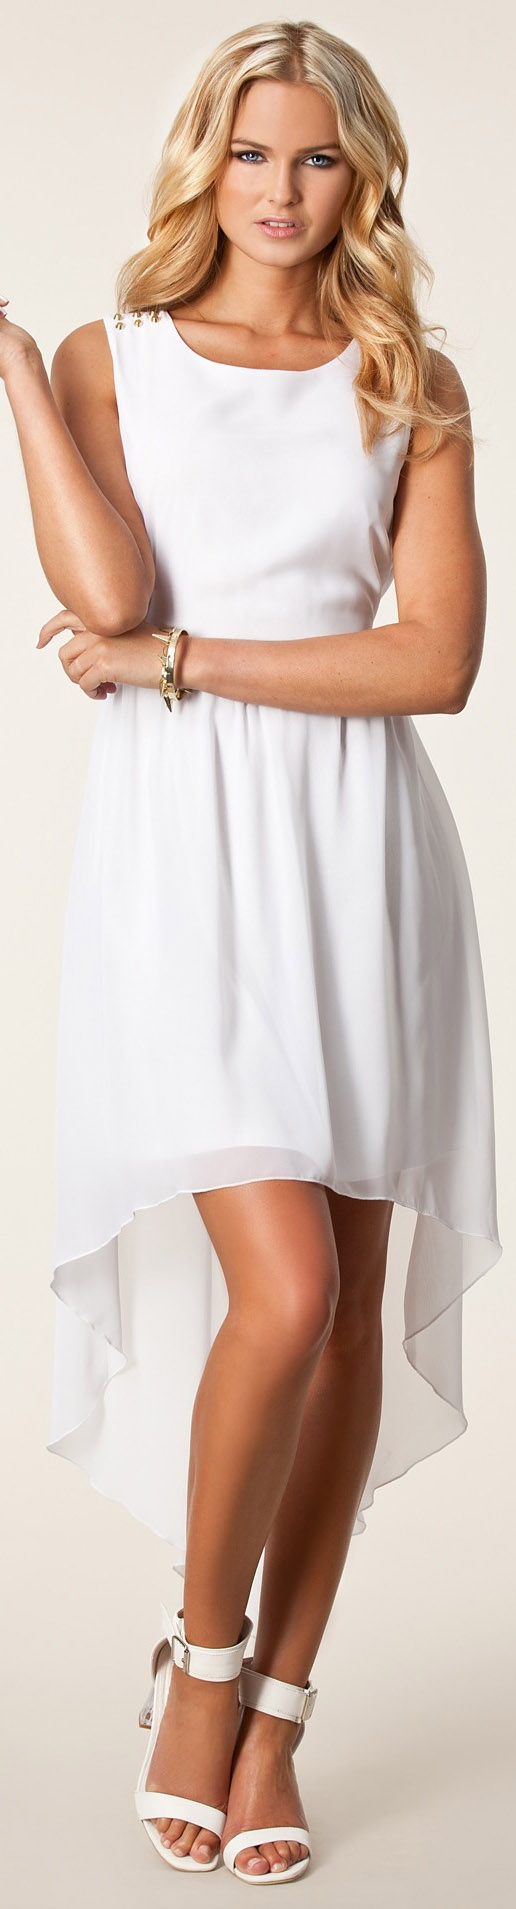 Timmo New Dress #white #chic #cocktail